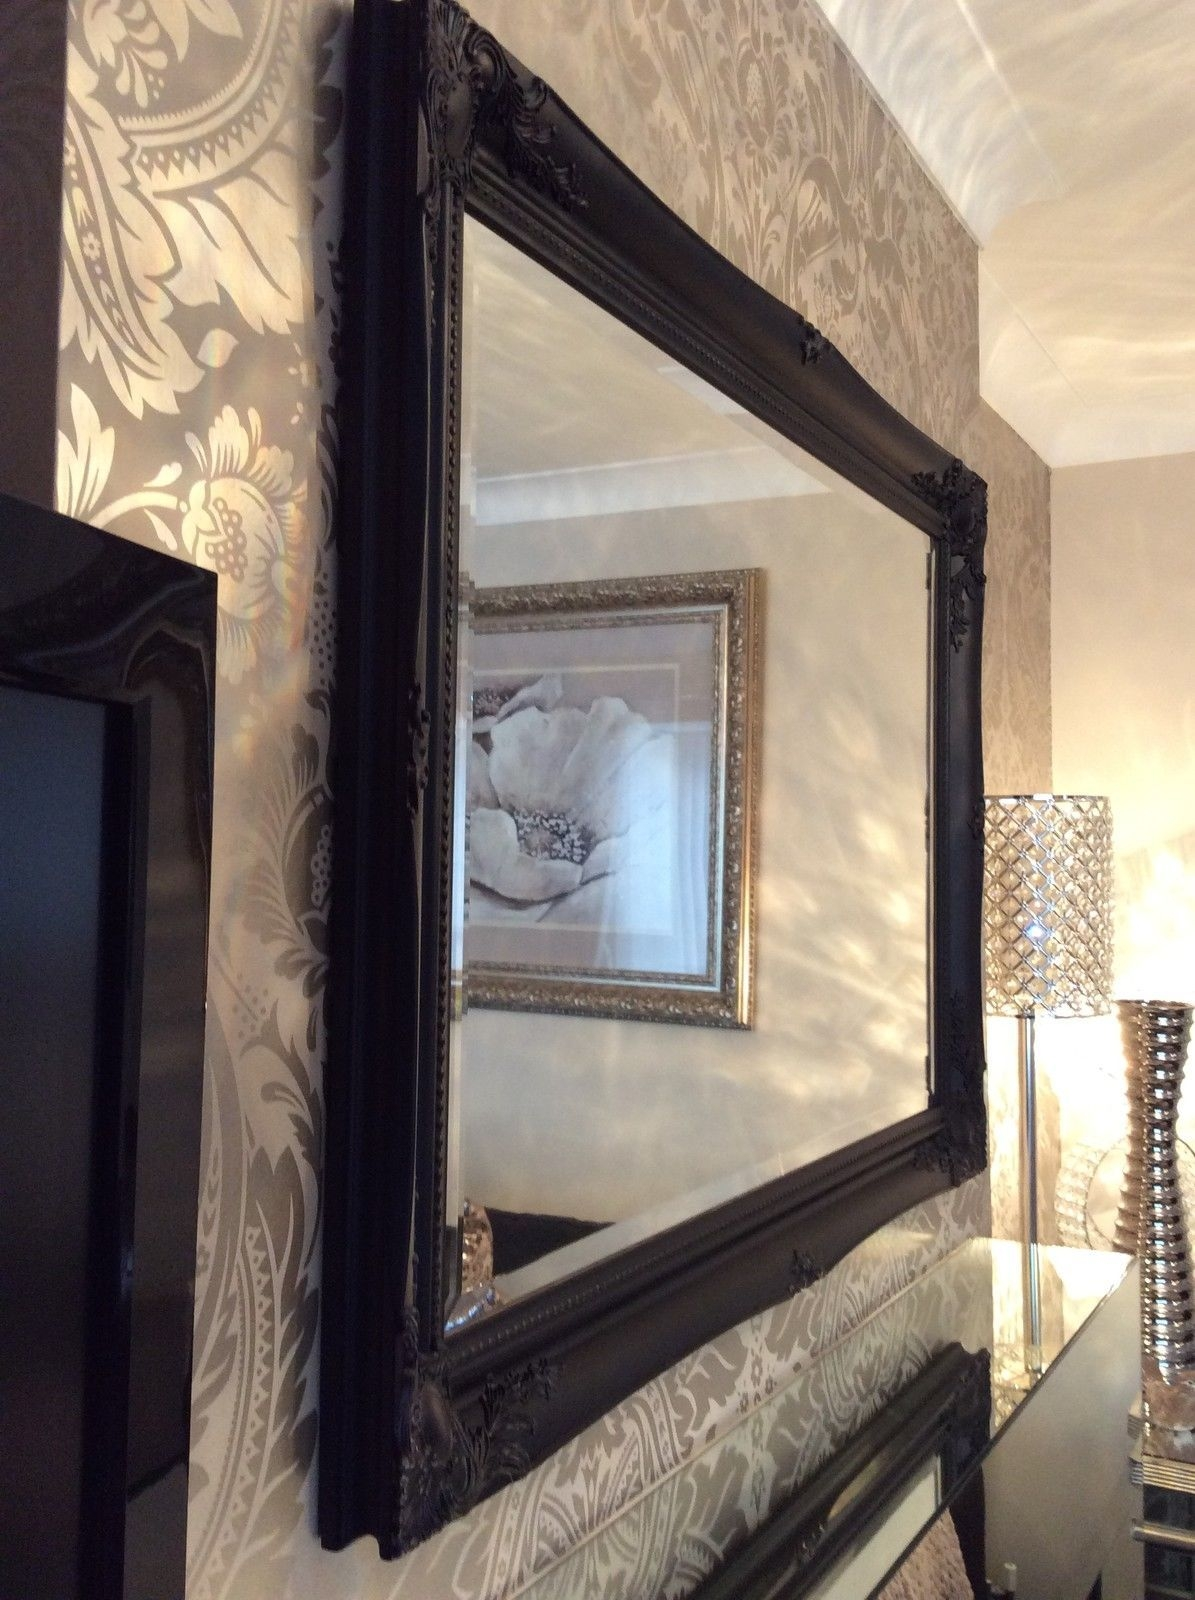 Black Shab Chic Framed Ornate Overmantle Wall Mirror Range Of With Large Black Mirrors (Image 8 of 15)